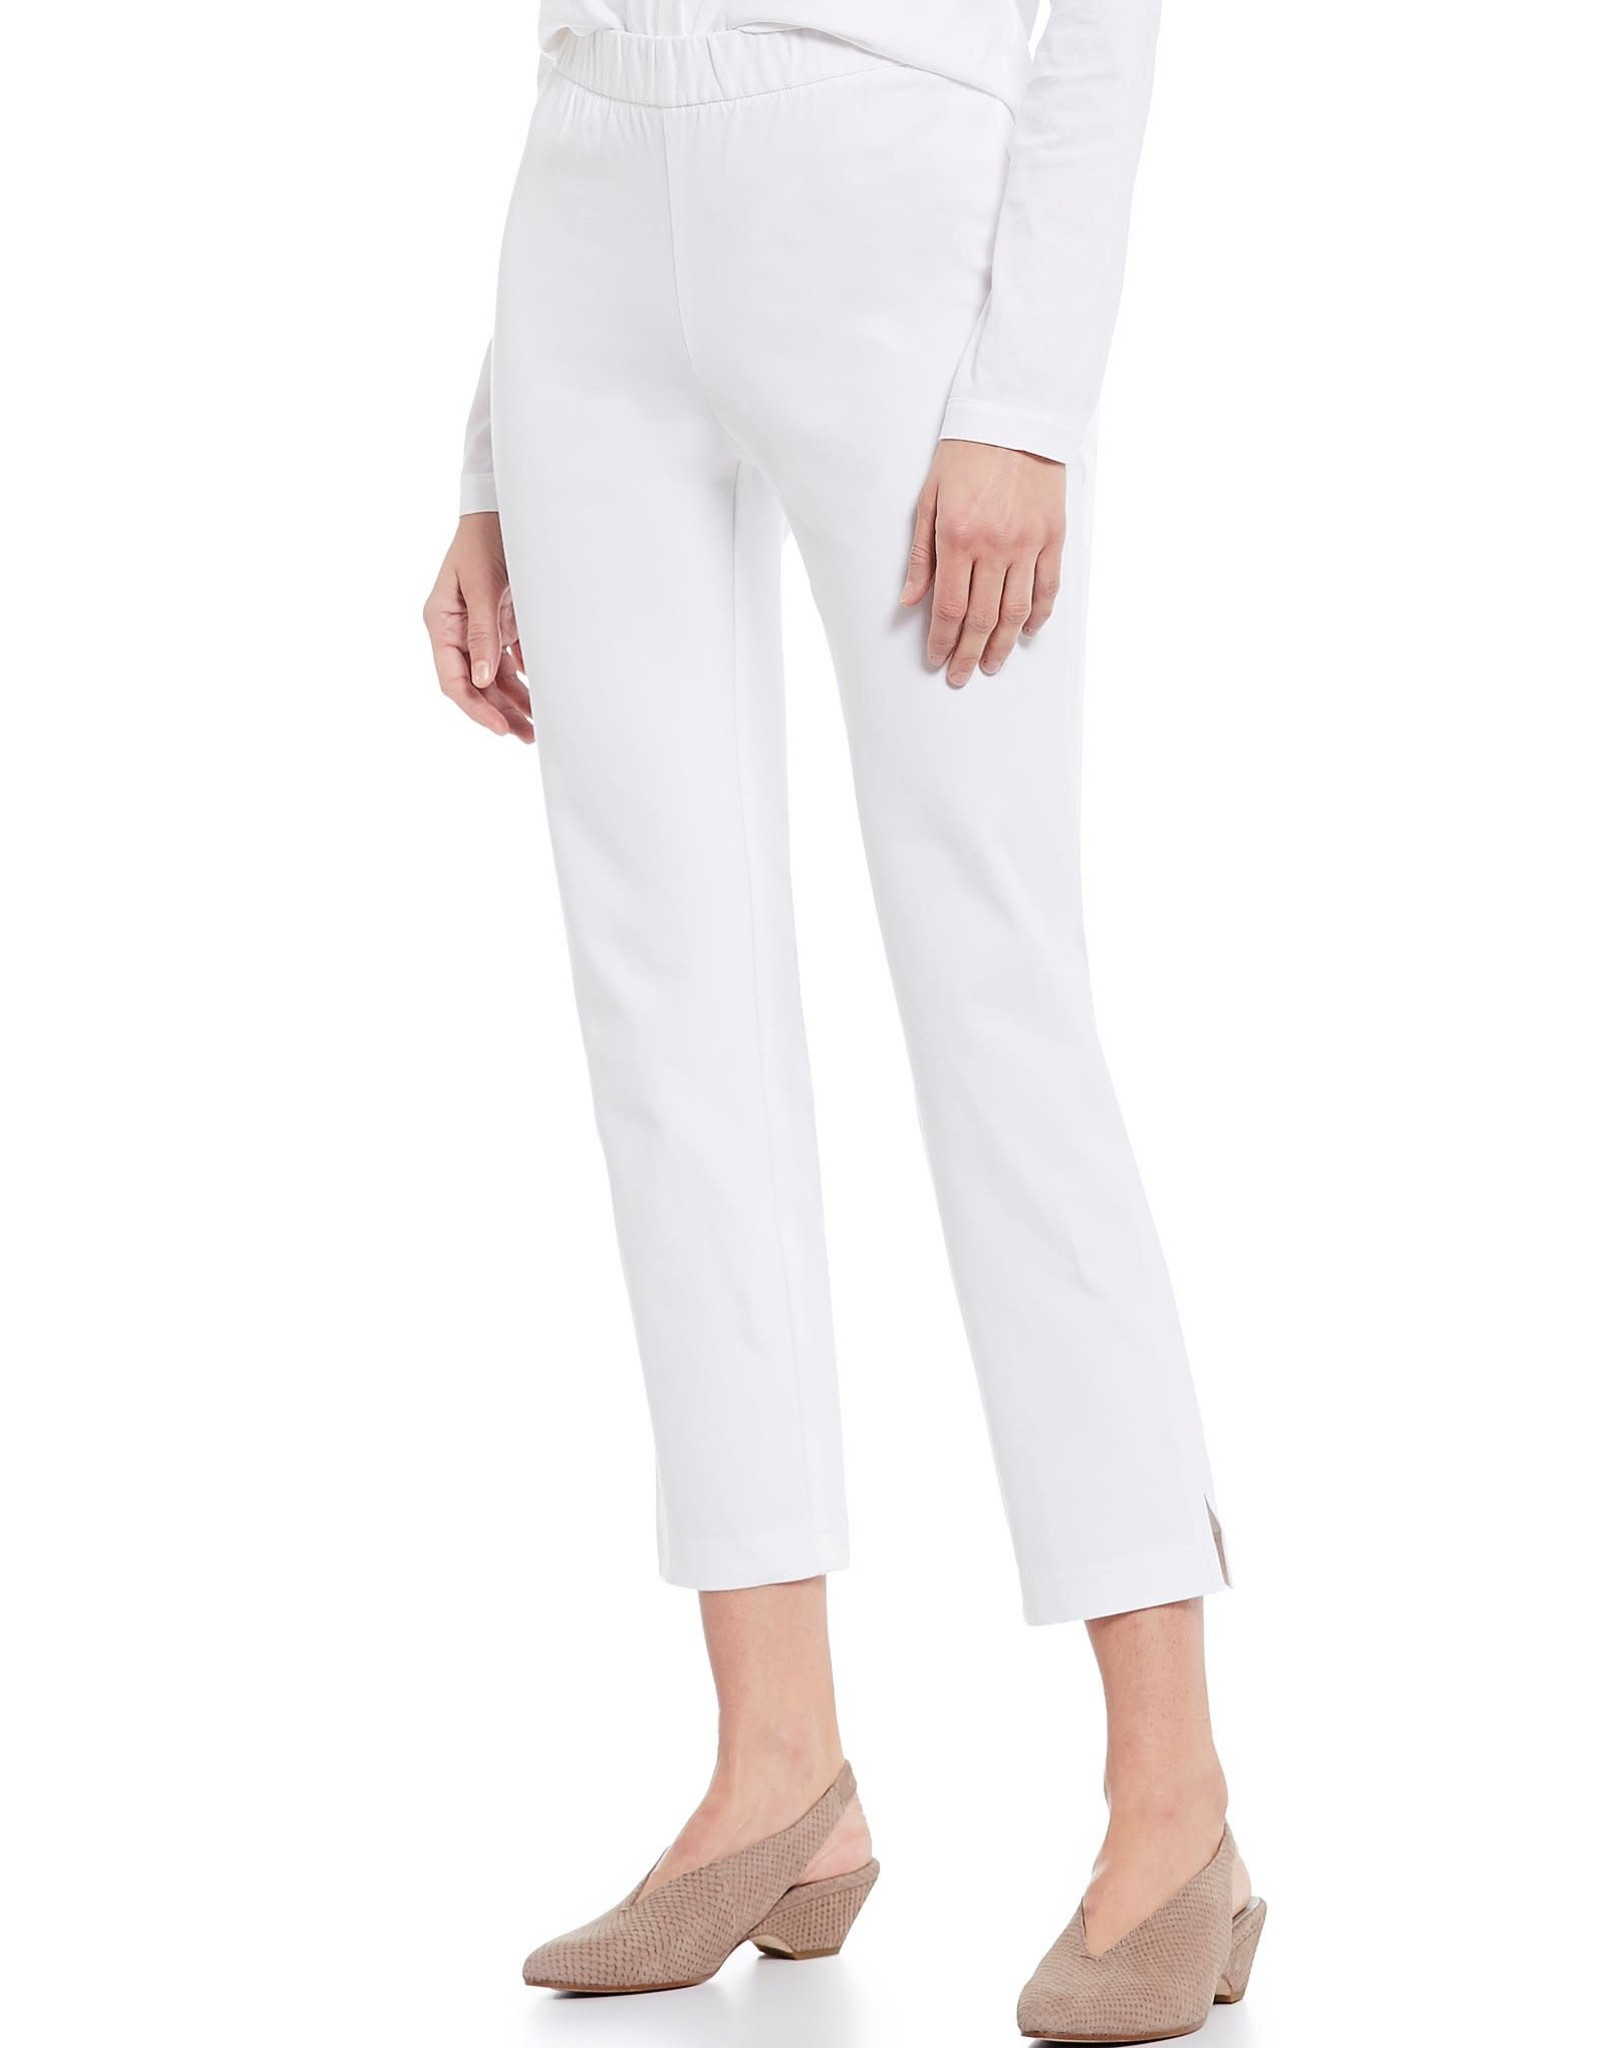 EILEEN FISHER - Organic Cotton Slim Ankle Pant